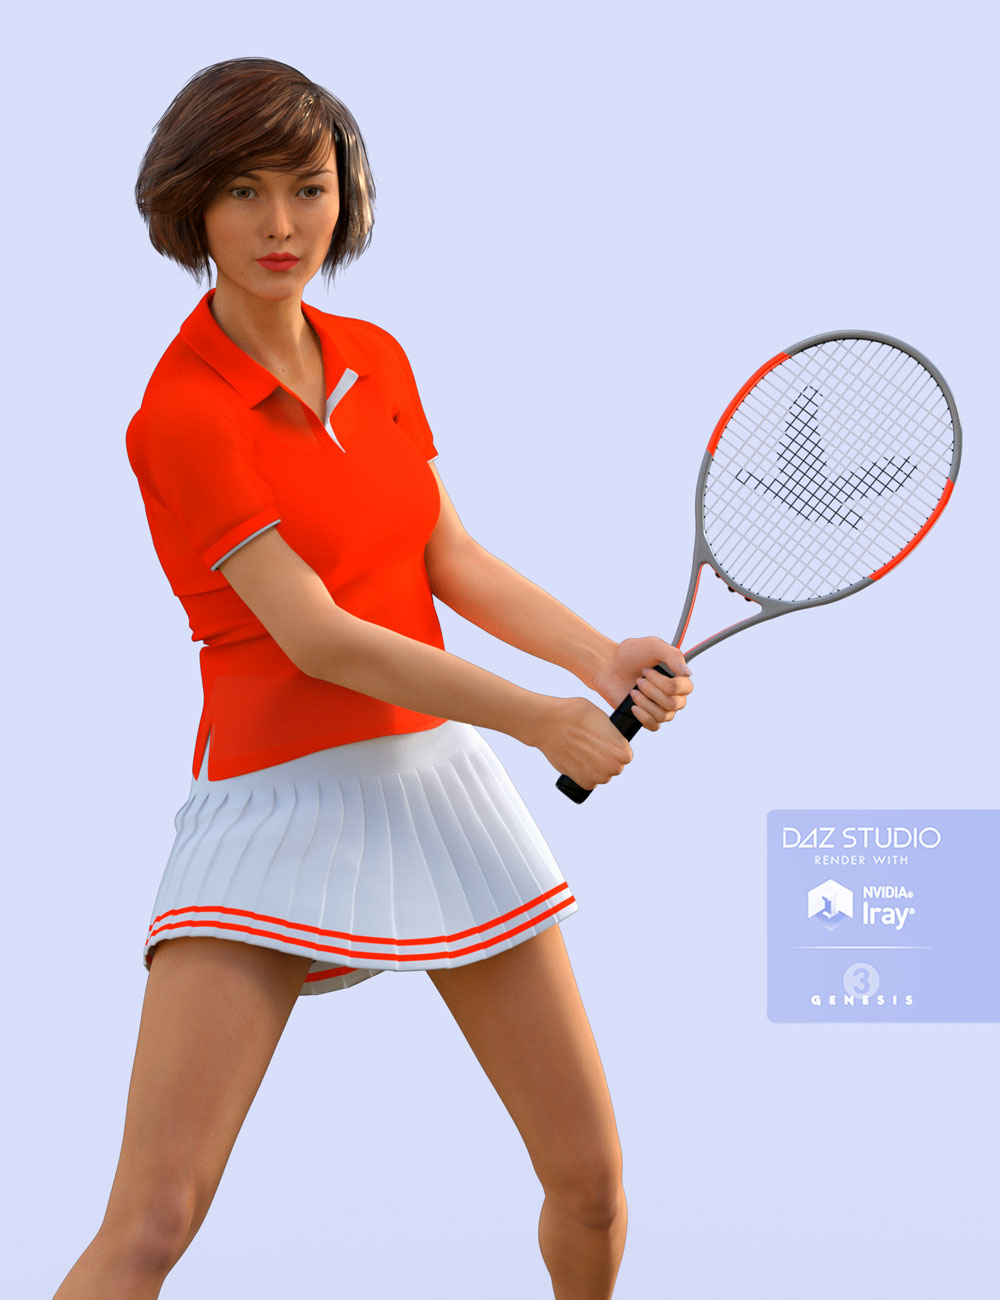 H&C Tennis Wear Set for Genesis 3 Female(s) by: IH Kang, 3D Models by Daz 3D